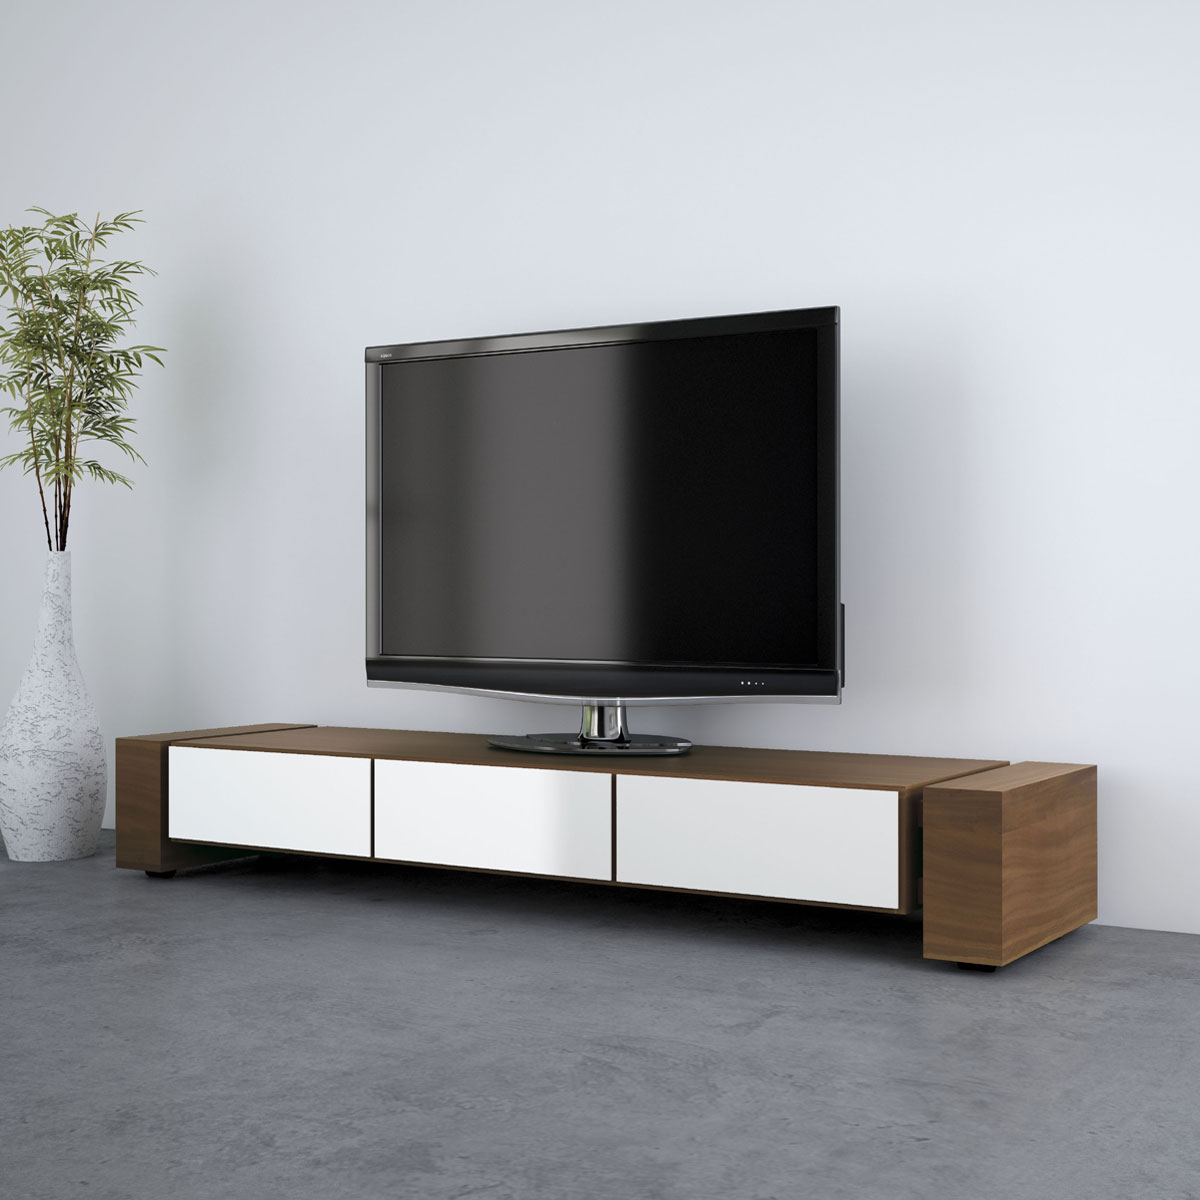 hifi m bel phonom bel hifi racks hifi regale audio m bel bei hifi tv seite 1. Black Bedroom Furniture Sets. Home Design Ideas